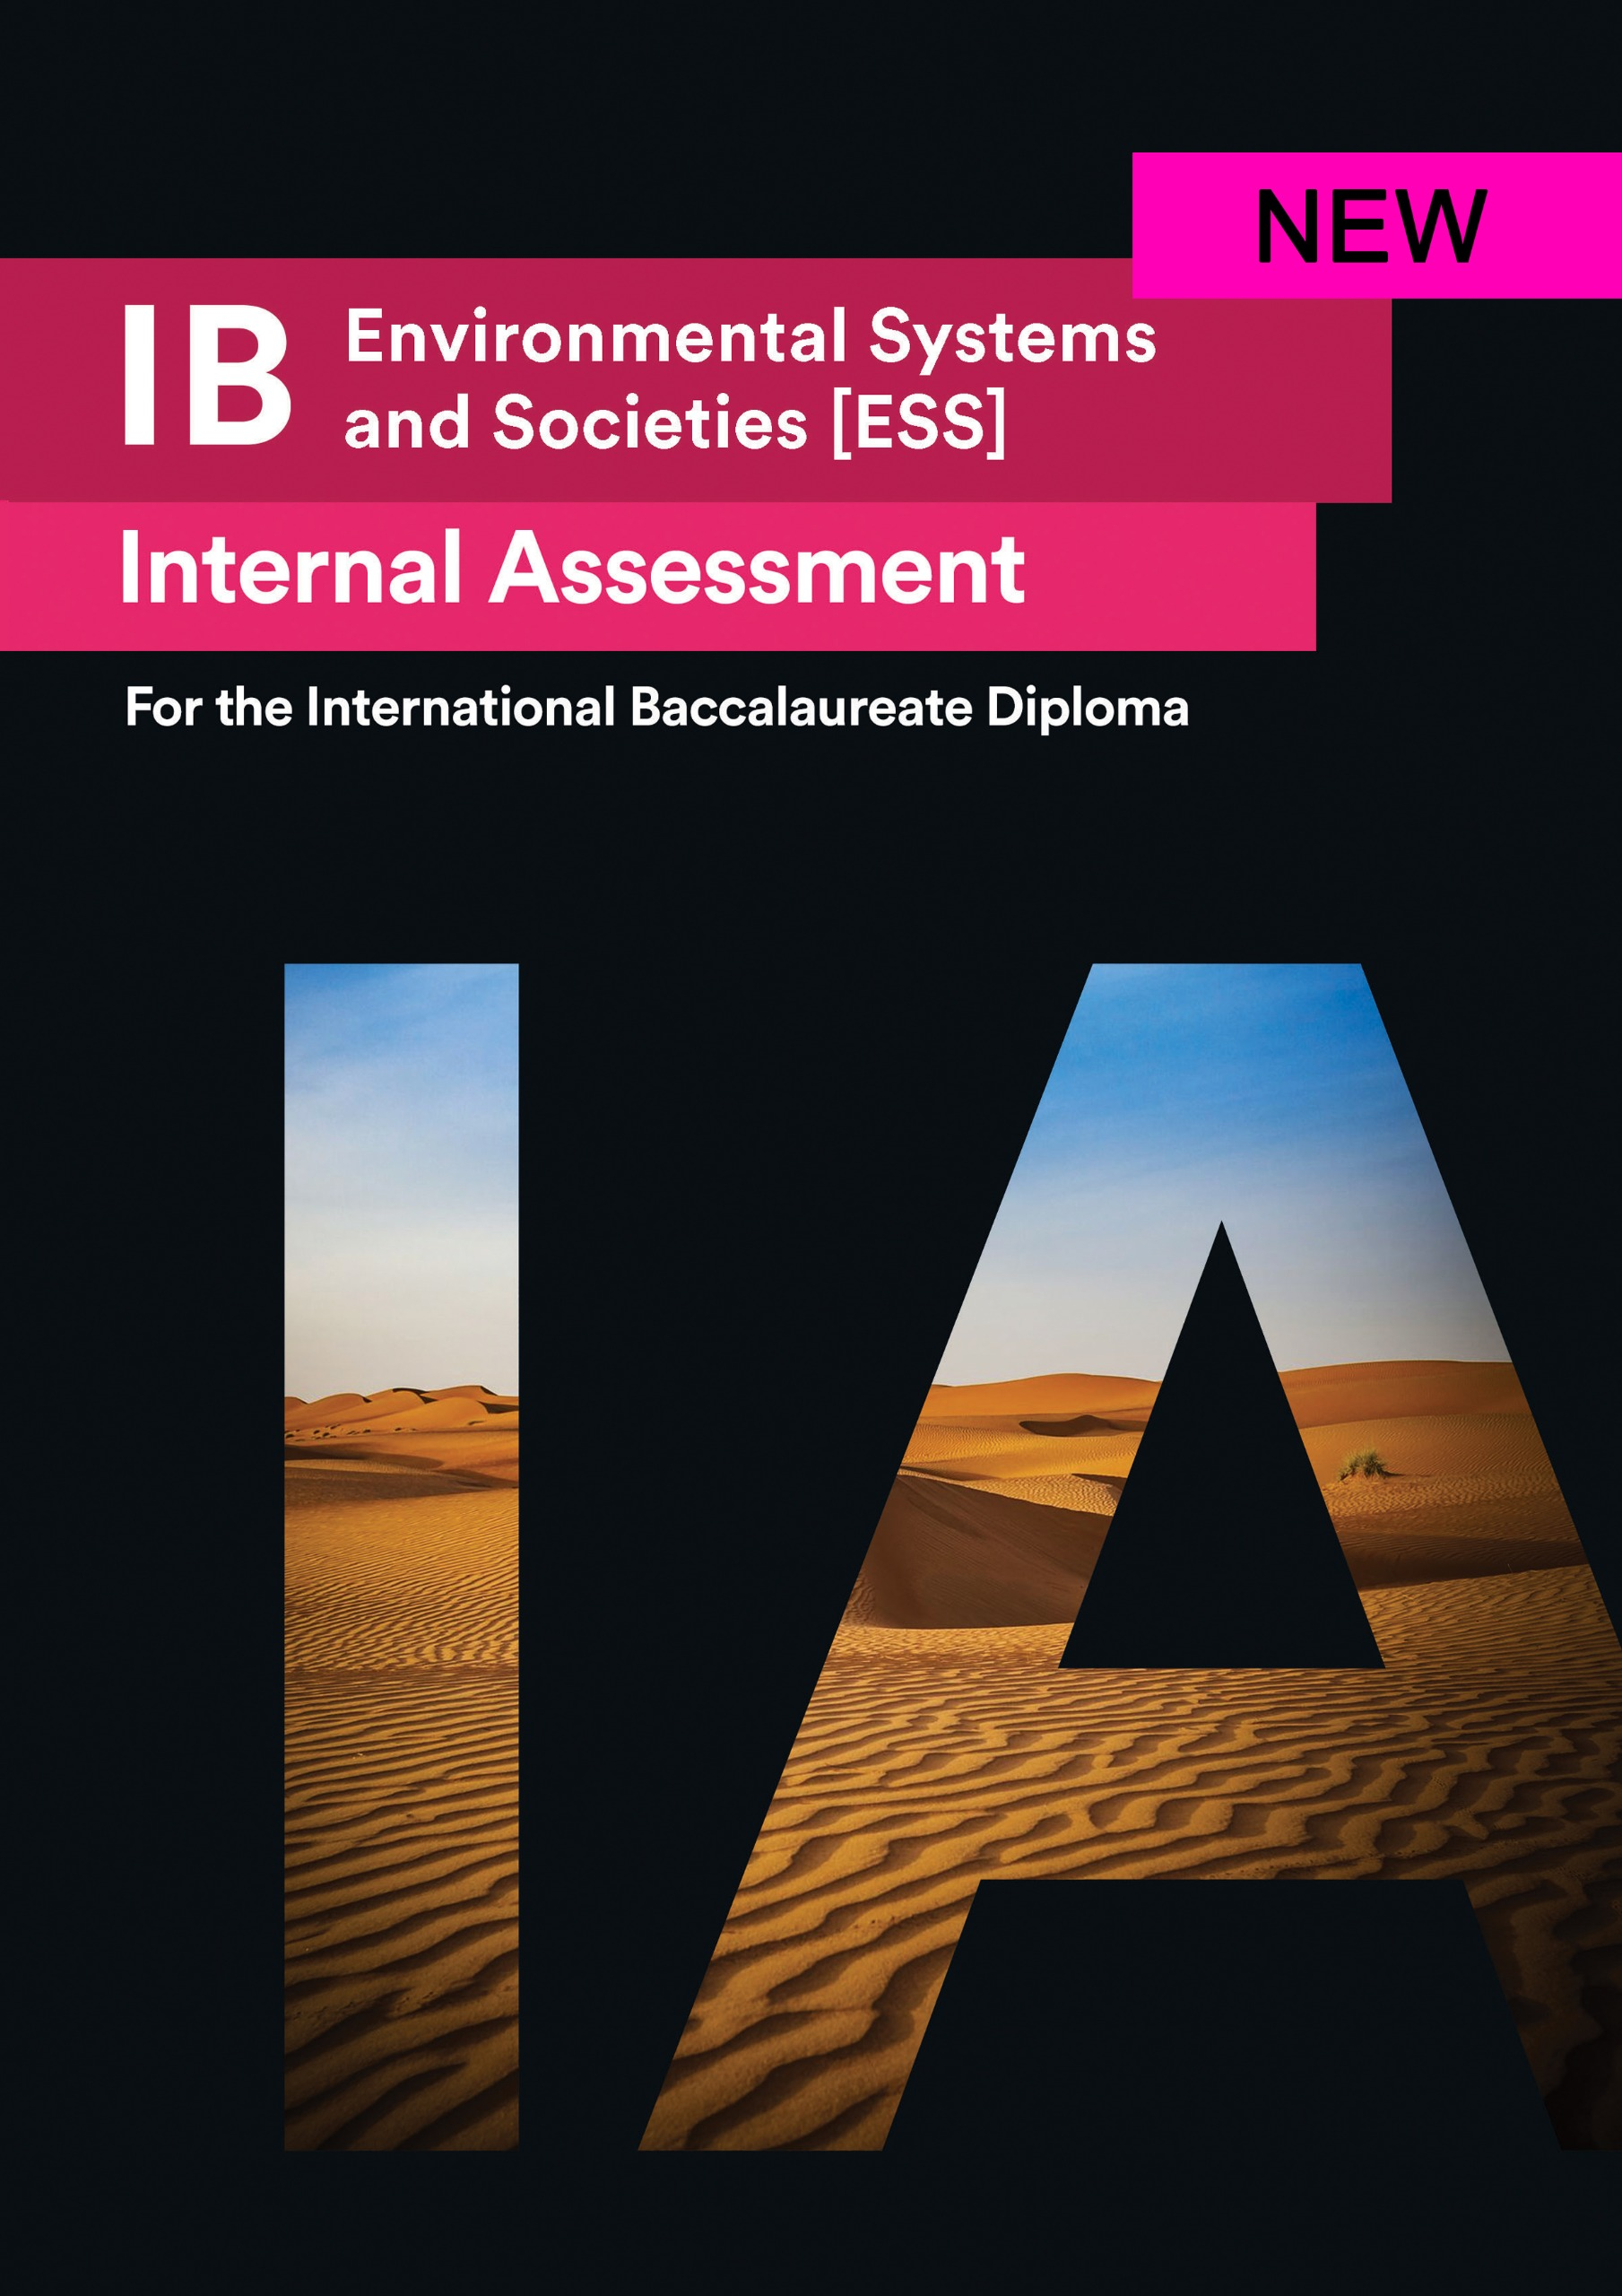 IB Environmental Systems and Societies [ESS] Internal Assessment [IA]: Seven Excellent IAs for IBDP